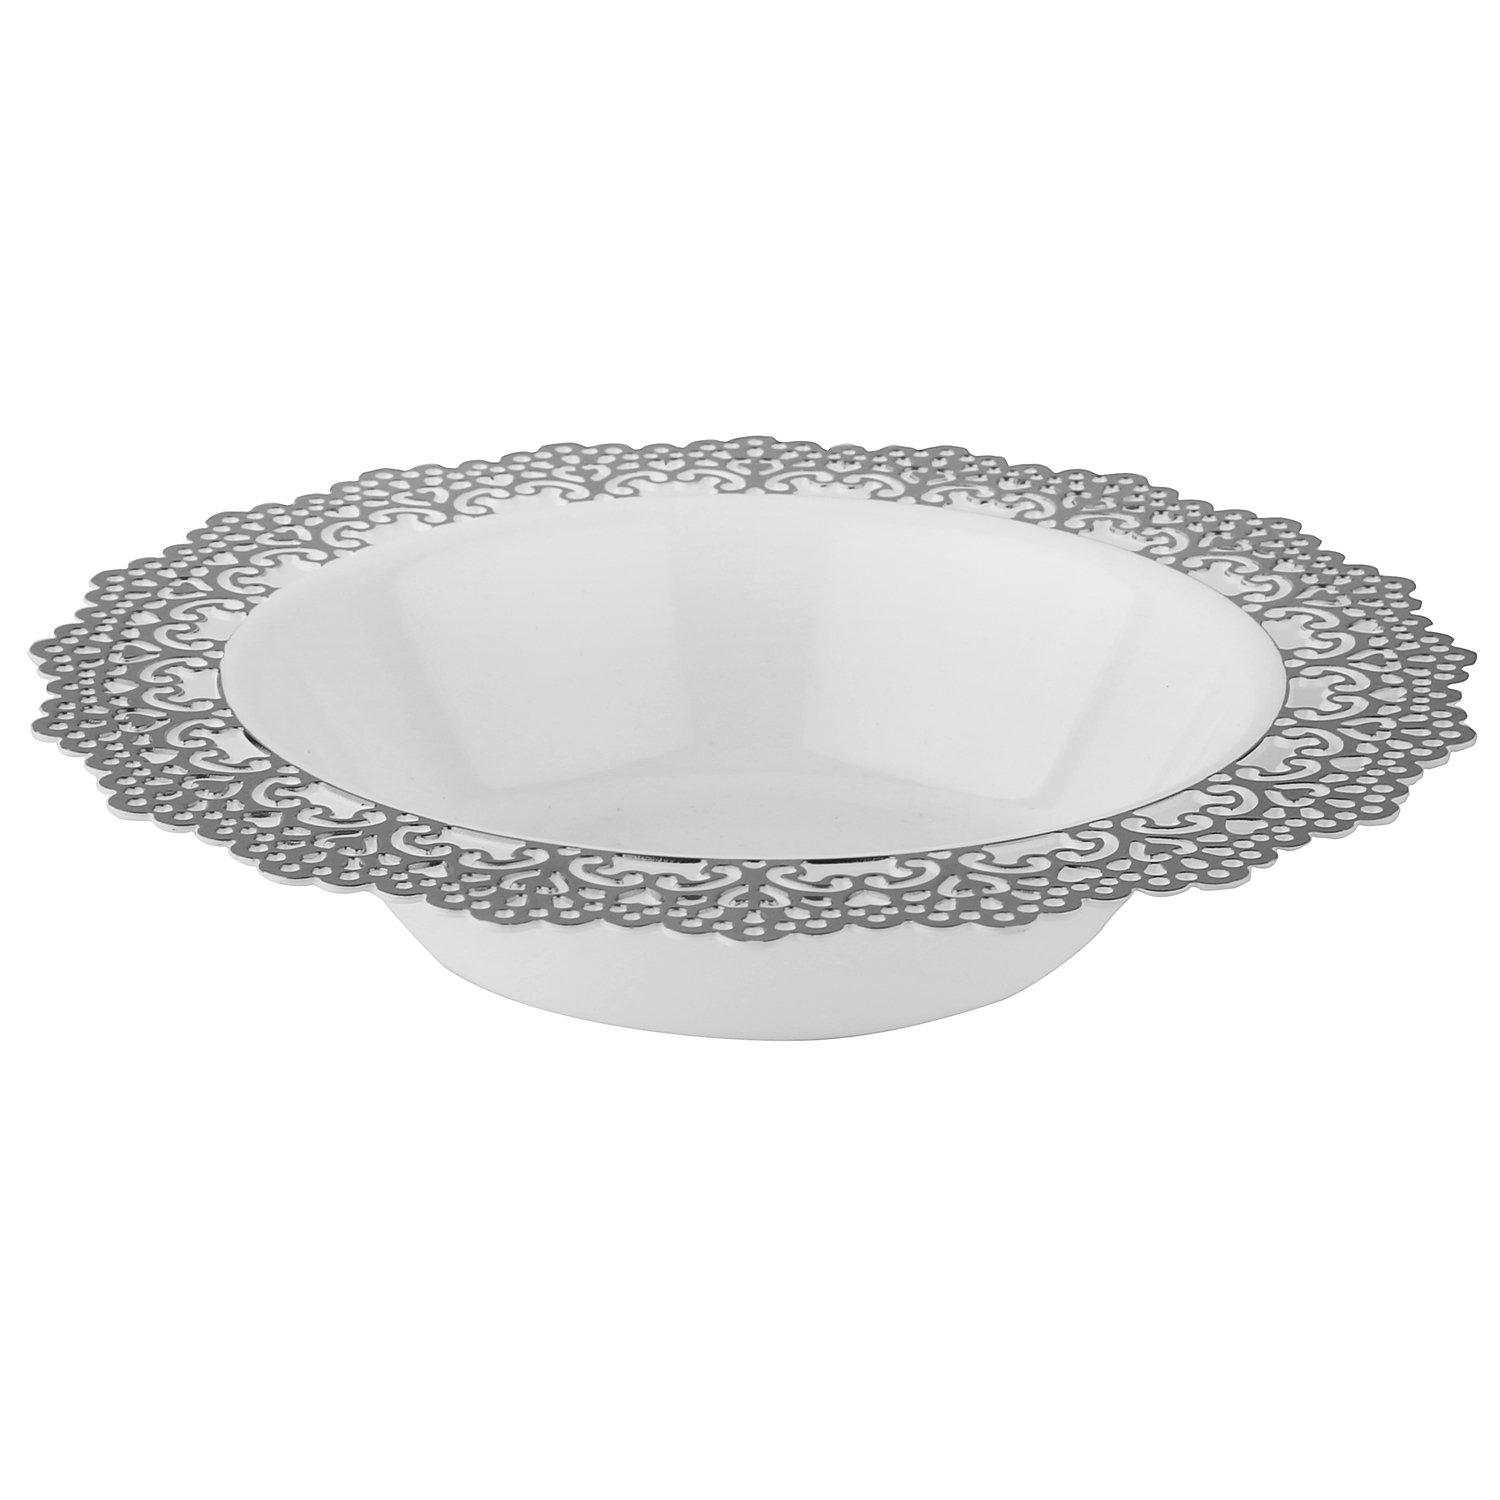 Elegant Disposable Plastic Dinnerware - White Soup/Salad Bowl with Silver Lace Trim - Hard  sc 1 st  Amazon.com : disposable plates that look real - pezcame.com